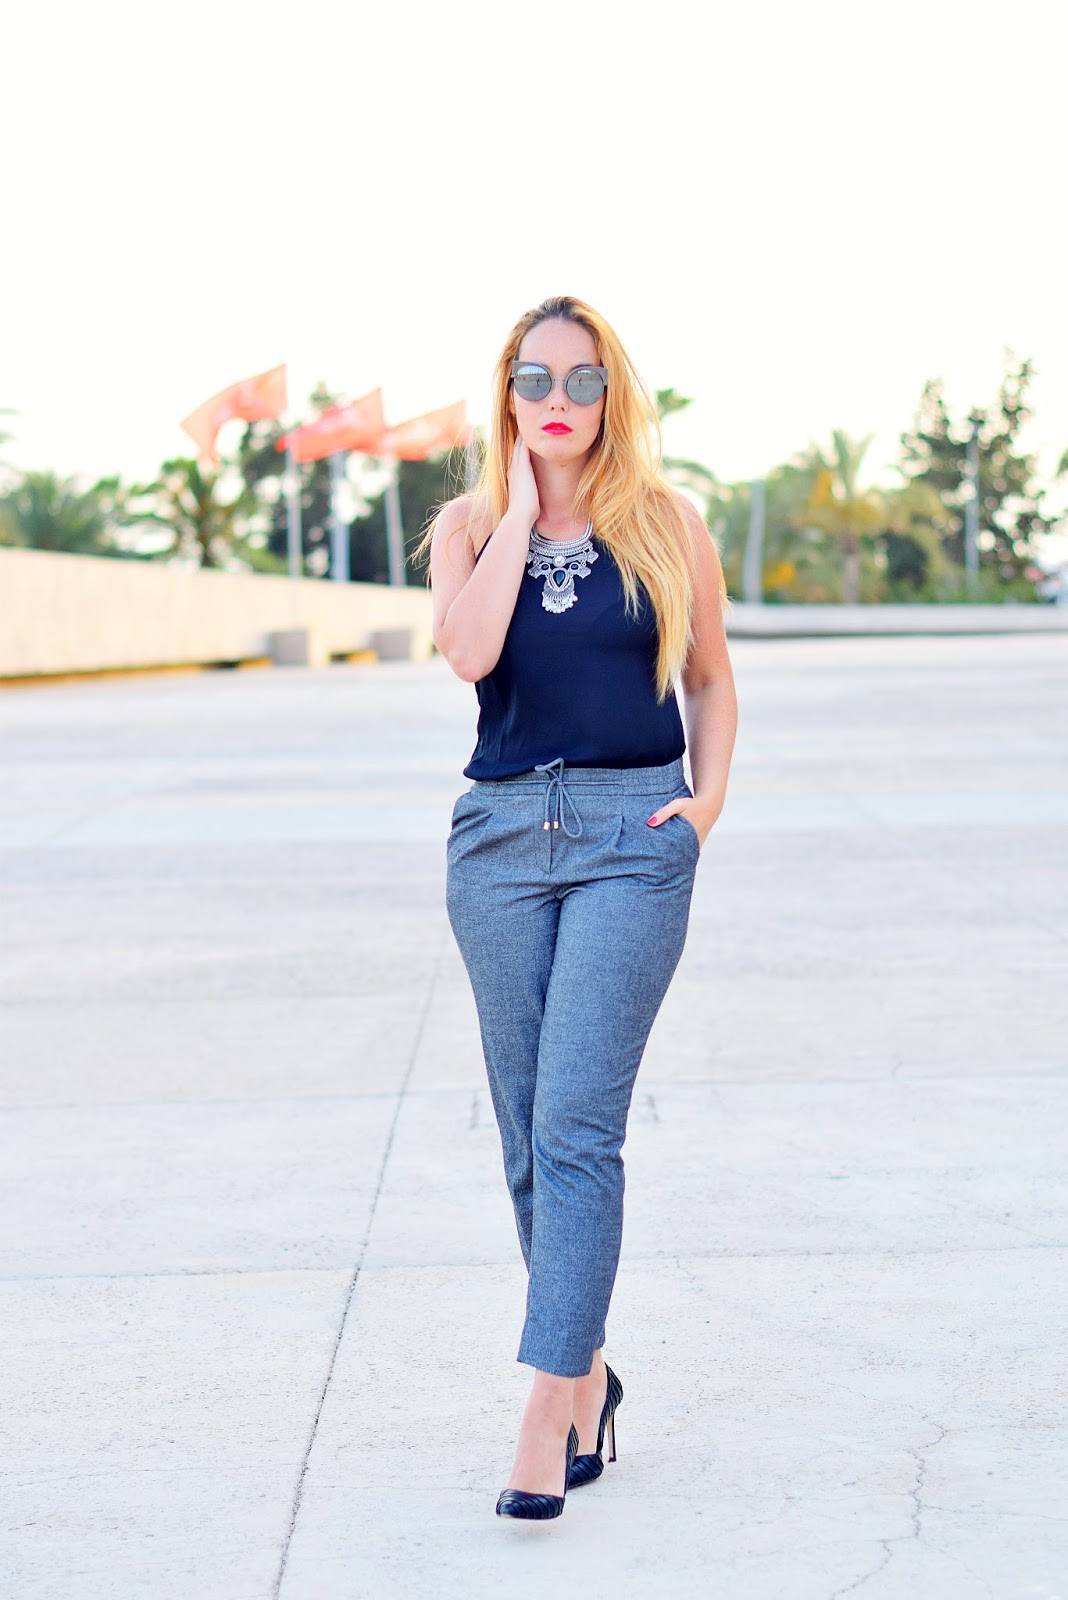 nery hdez, Fendi, Optical H , pantalones Jogging, wear to work look,